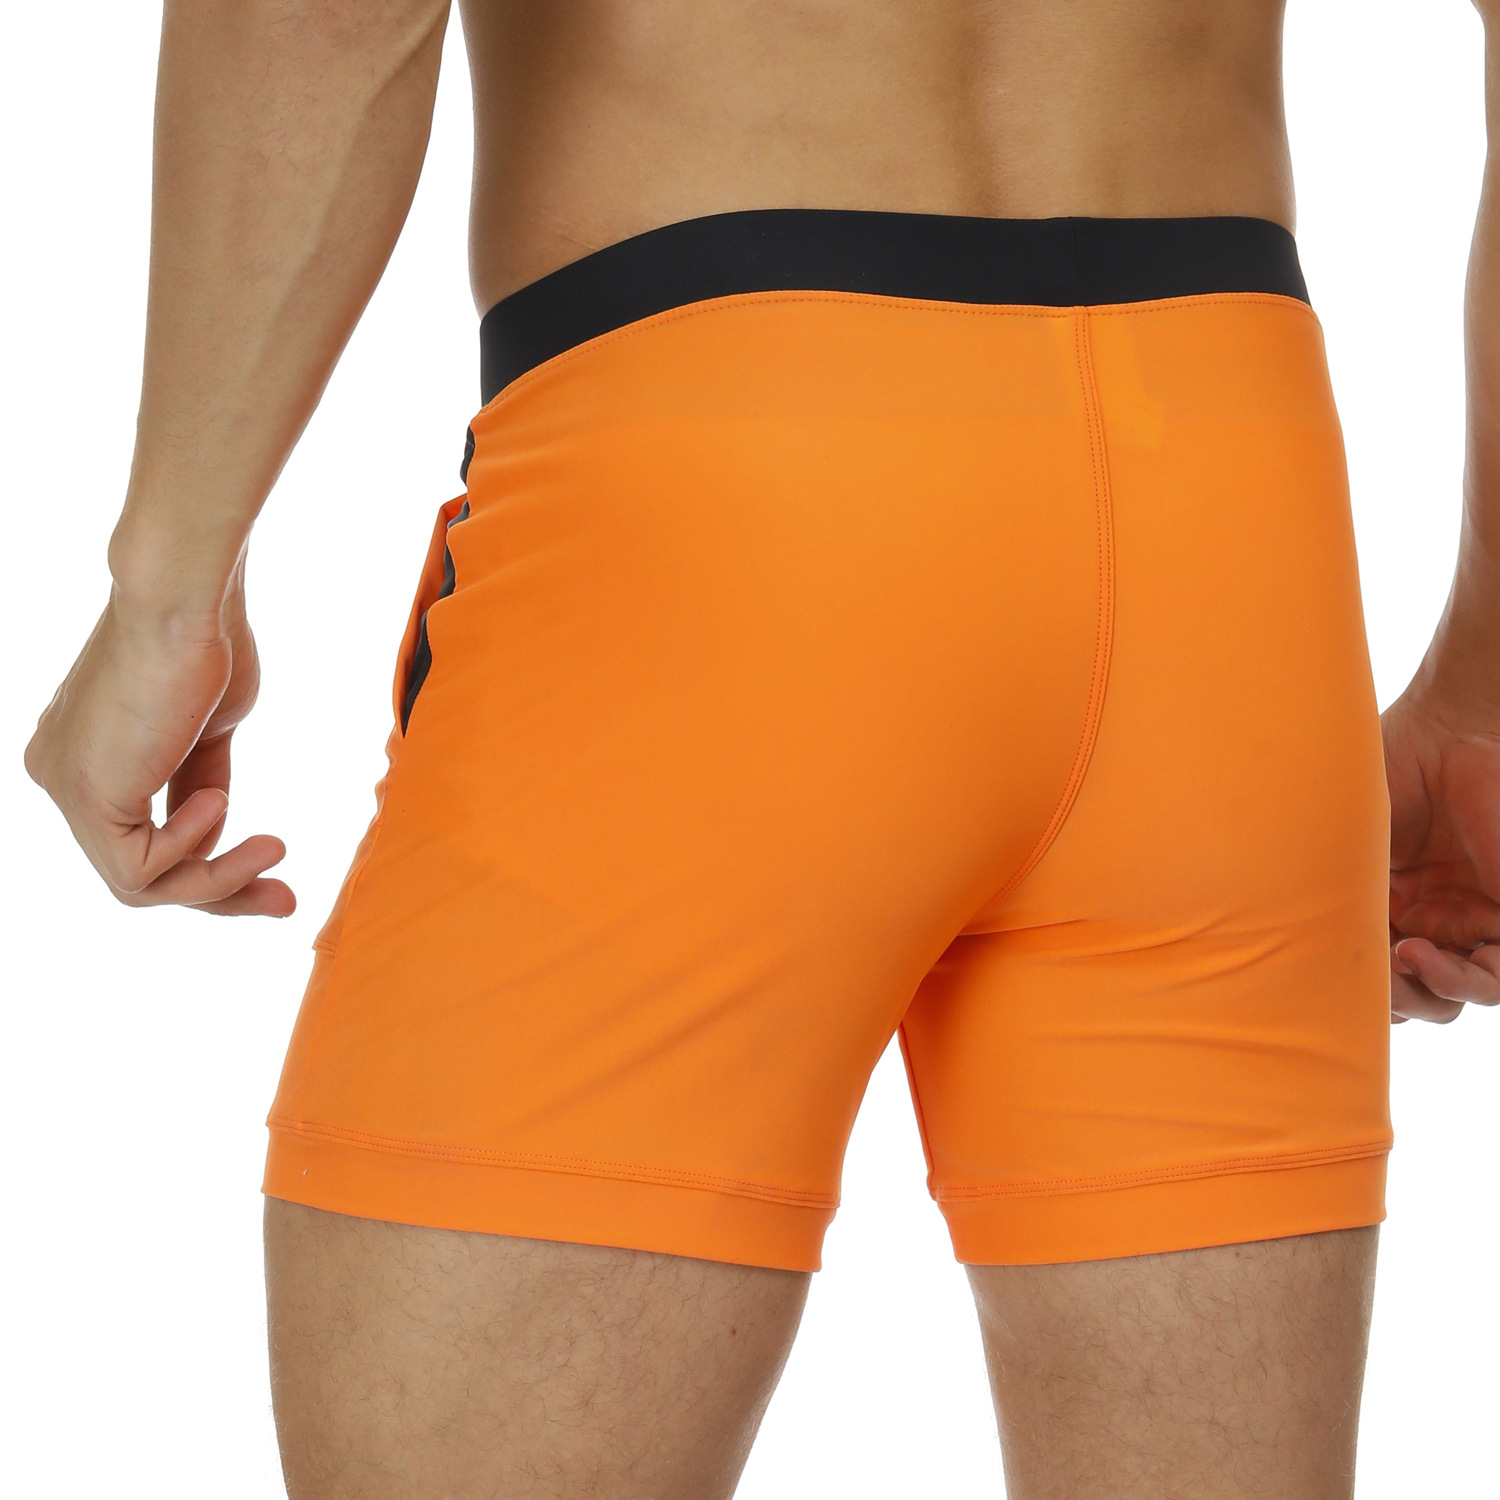 Aussiebum MEN'S Athletic Shorts Beach Shorts Fashion Loose Comfortable Quick-Dry Hot Springs Swimming Trunks